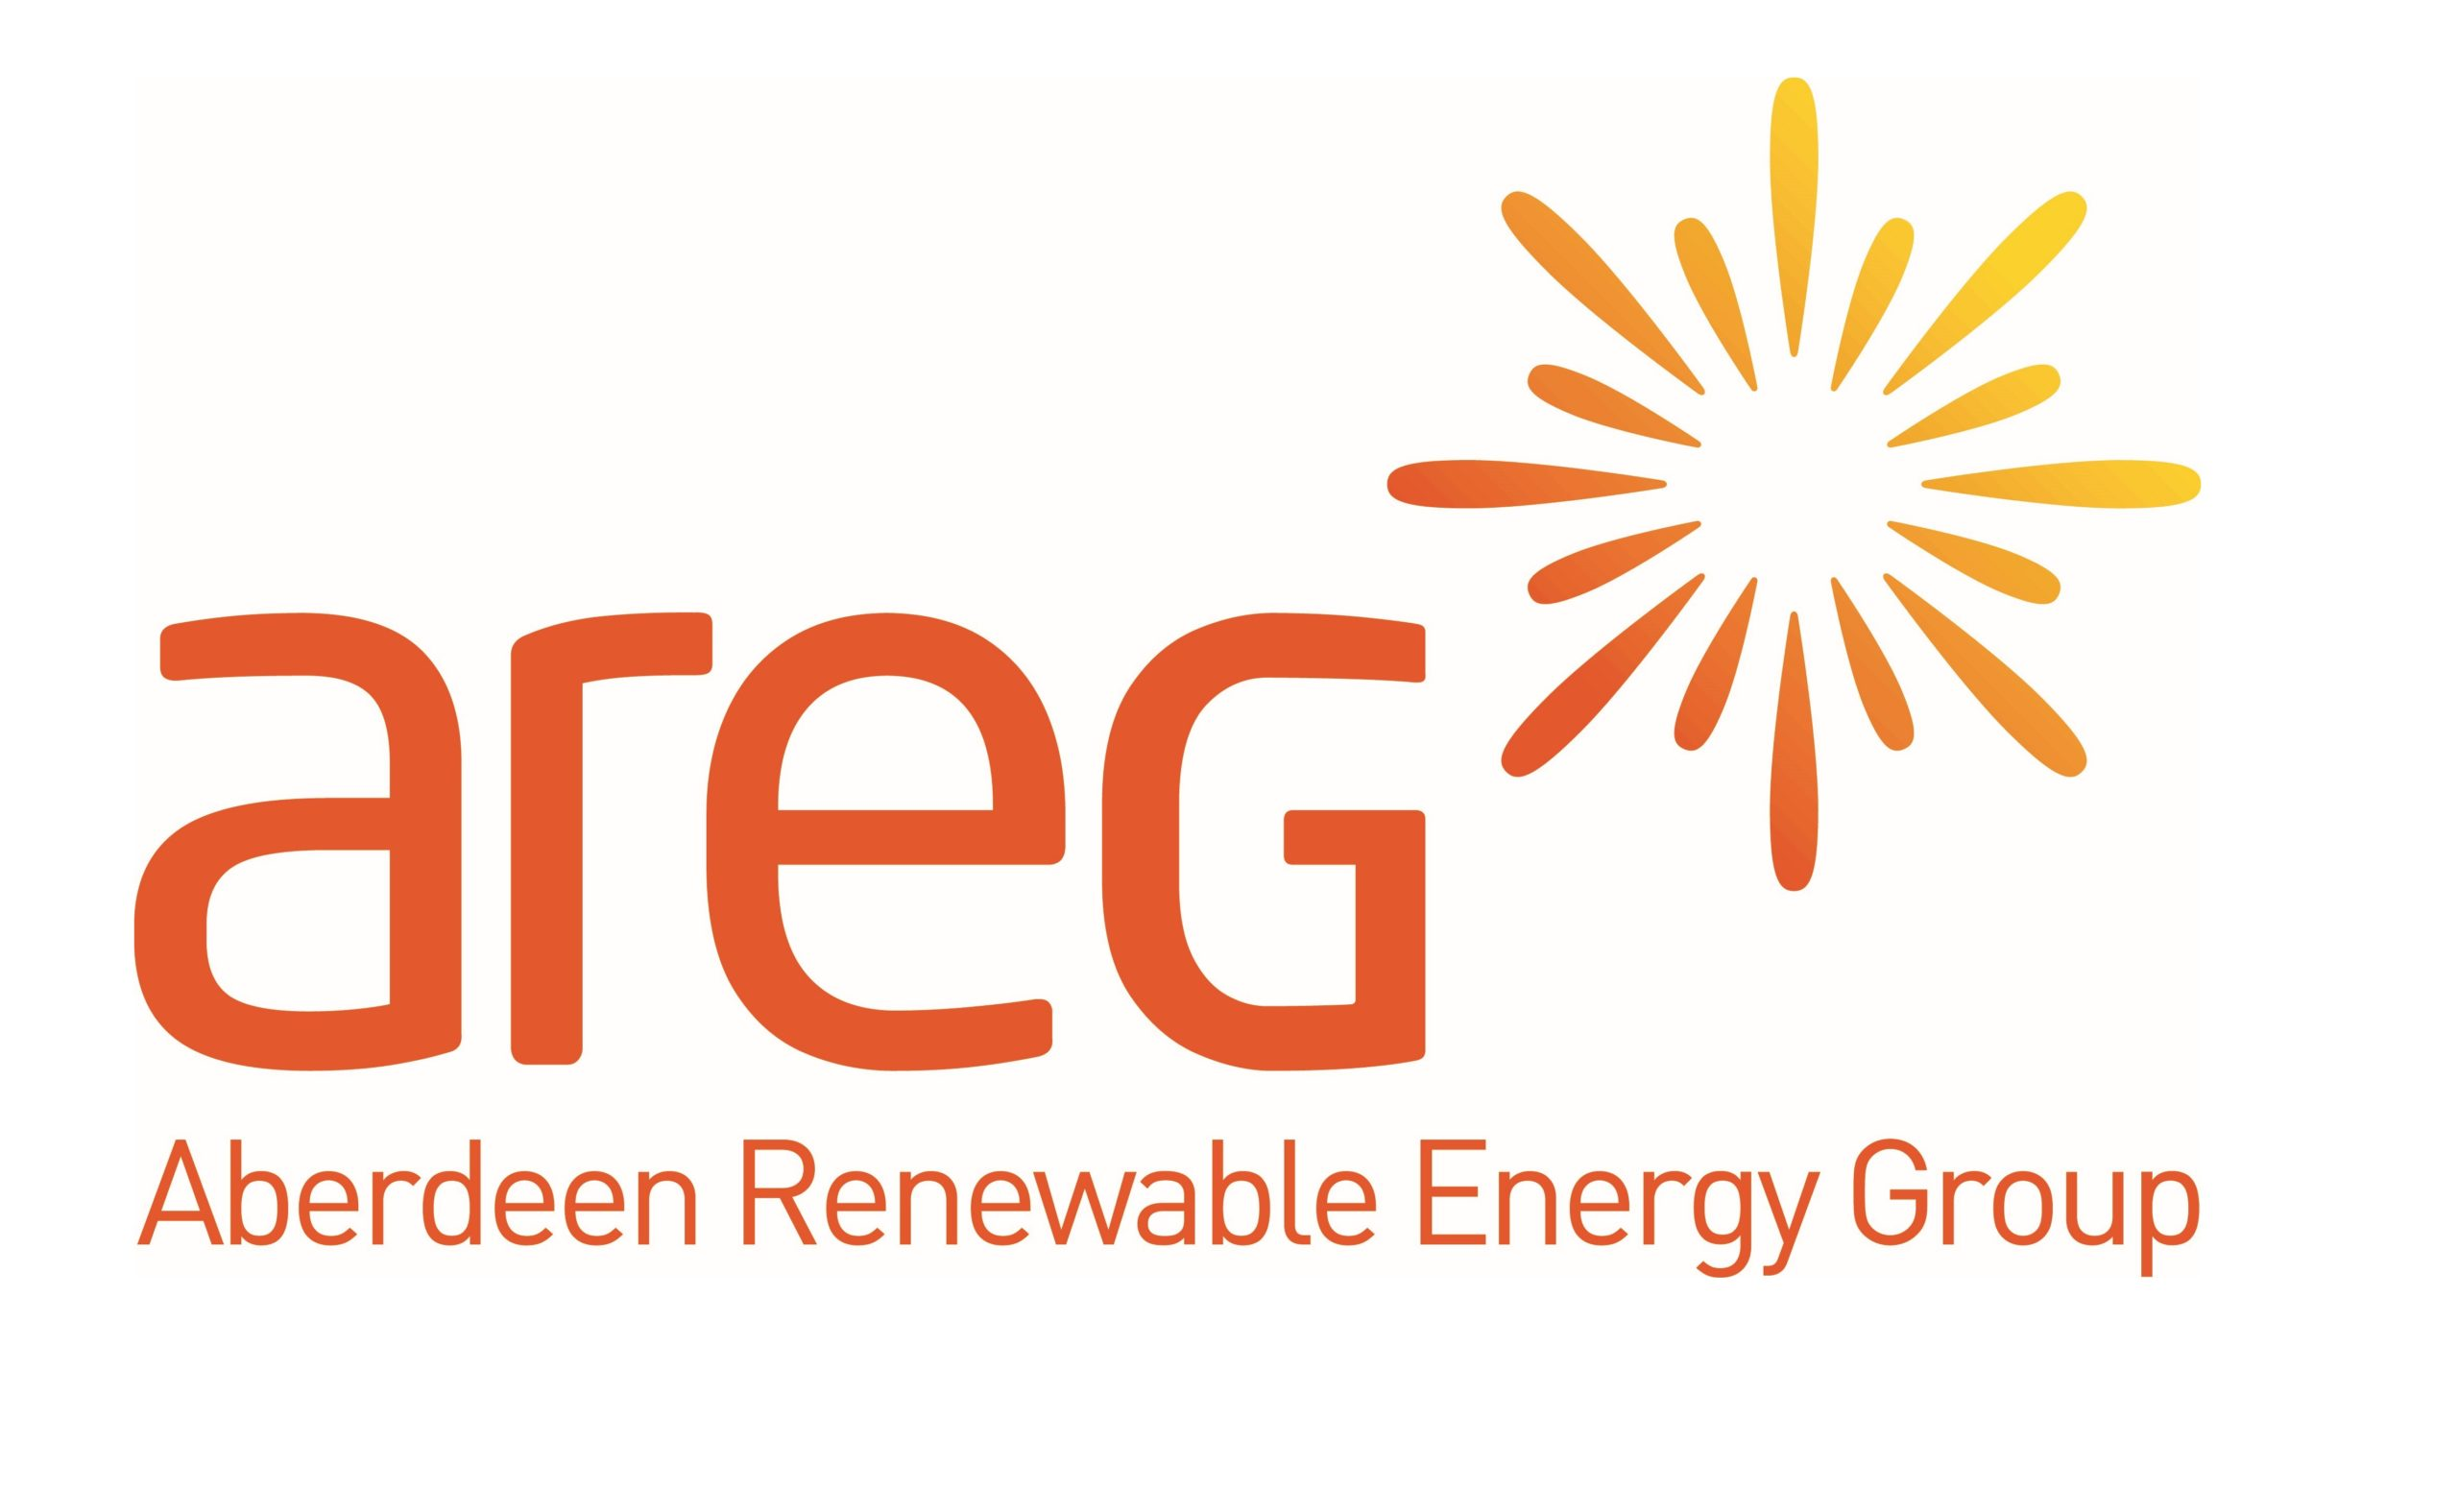 Drive for renewables sees AREG membership grow